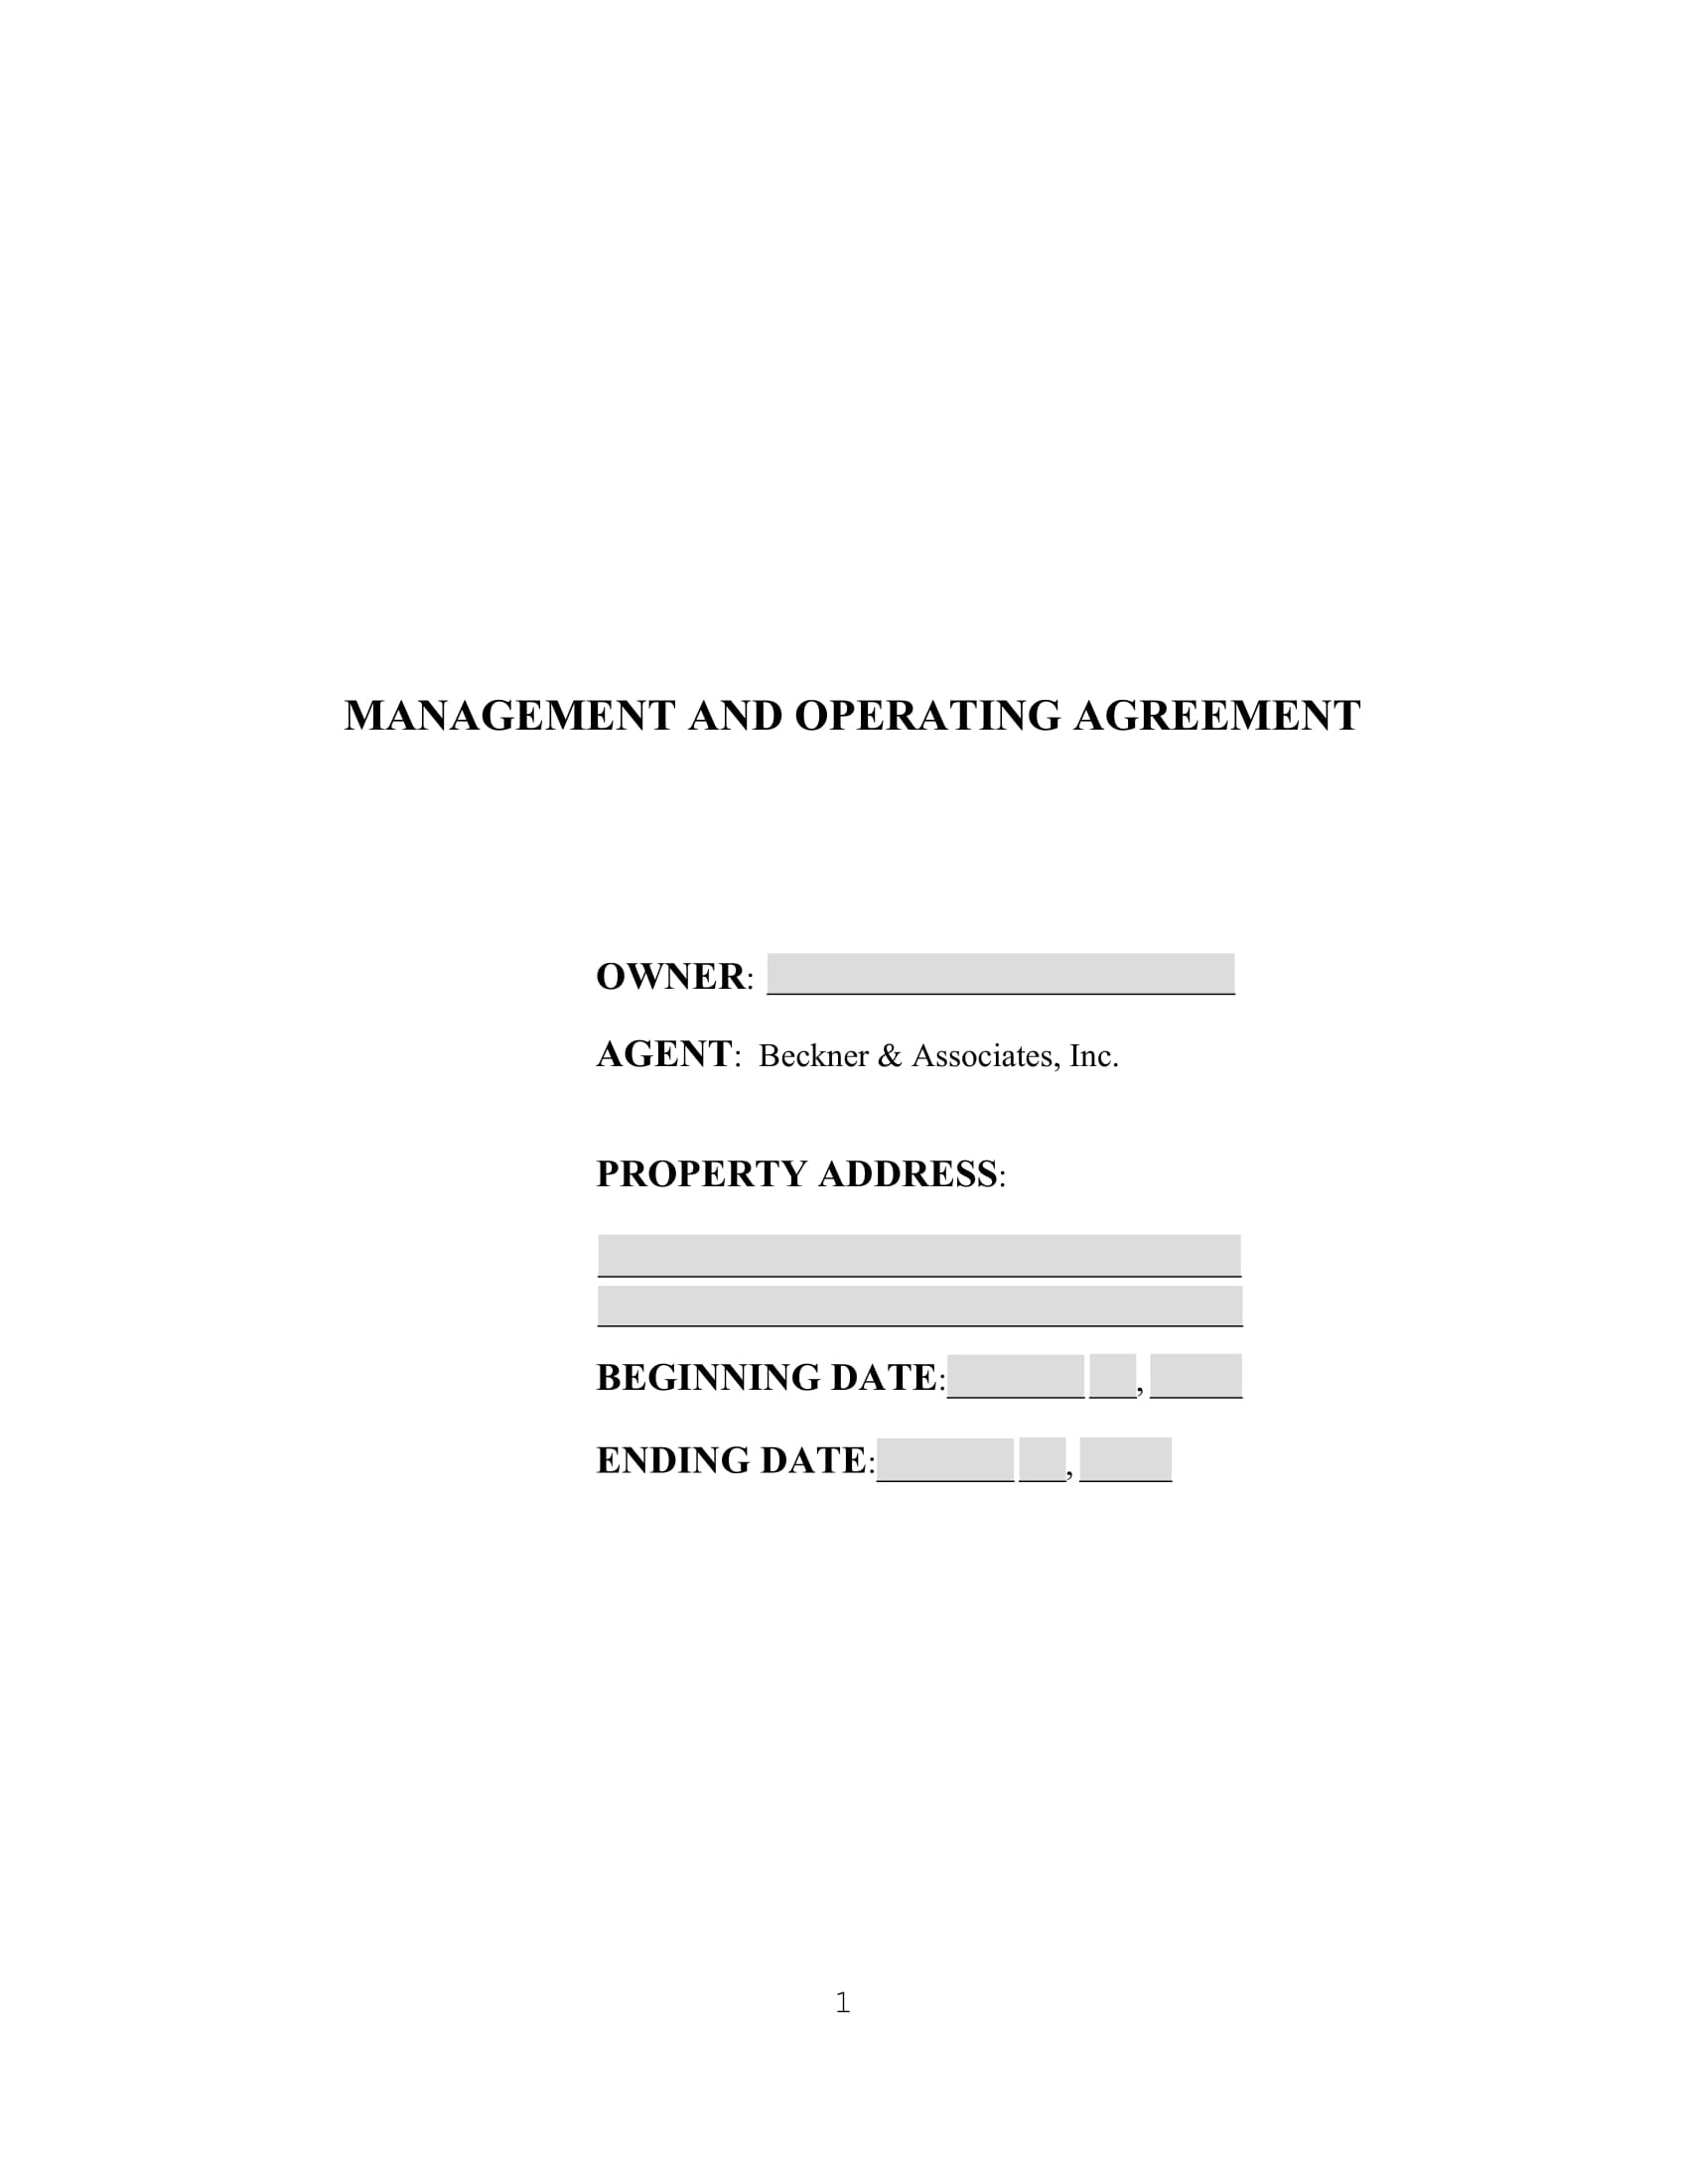 2007 management agreement